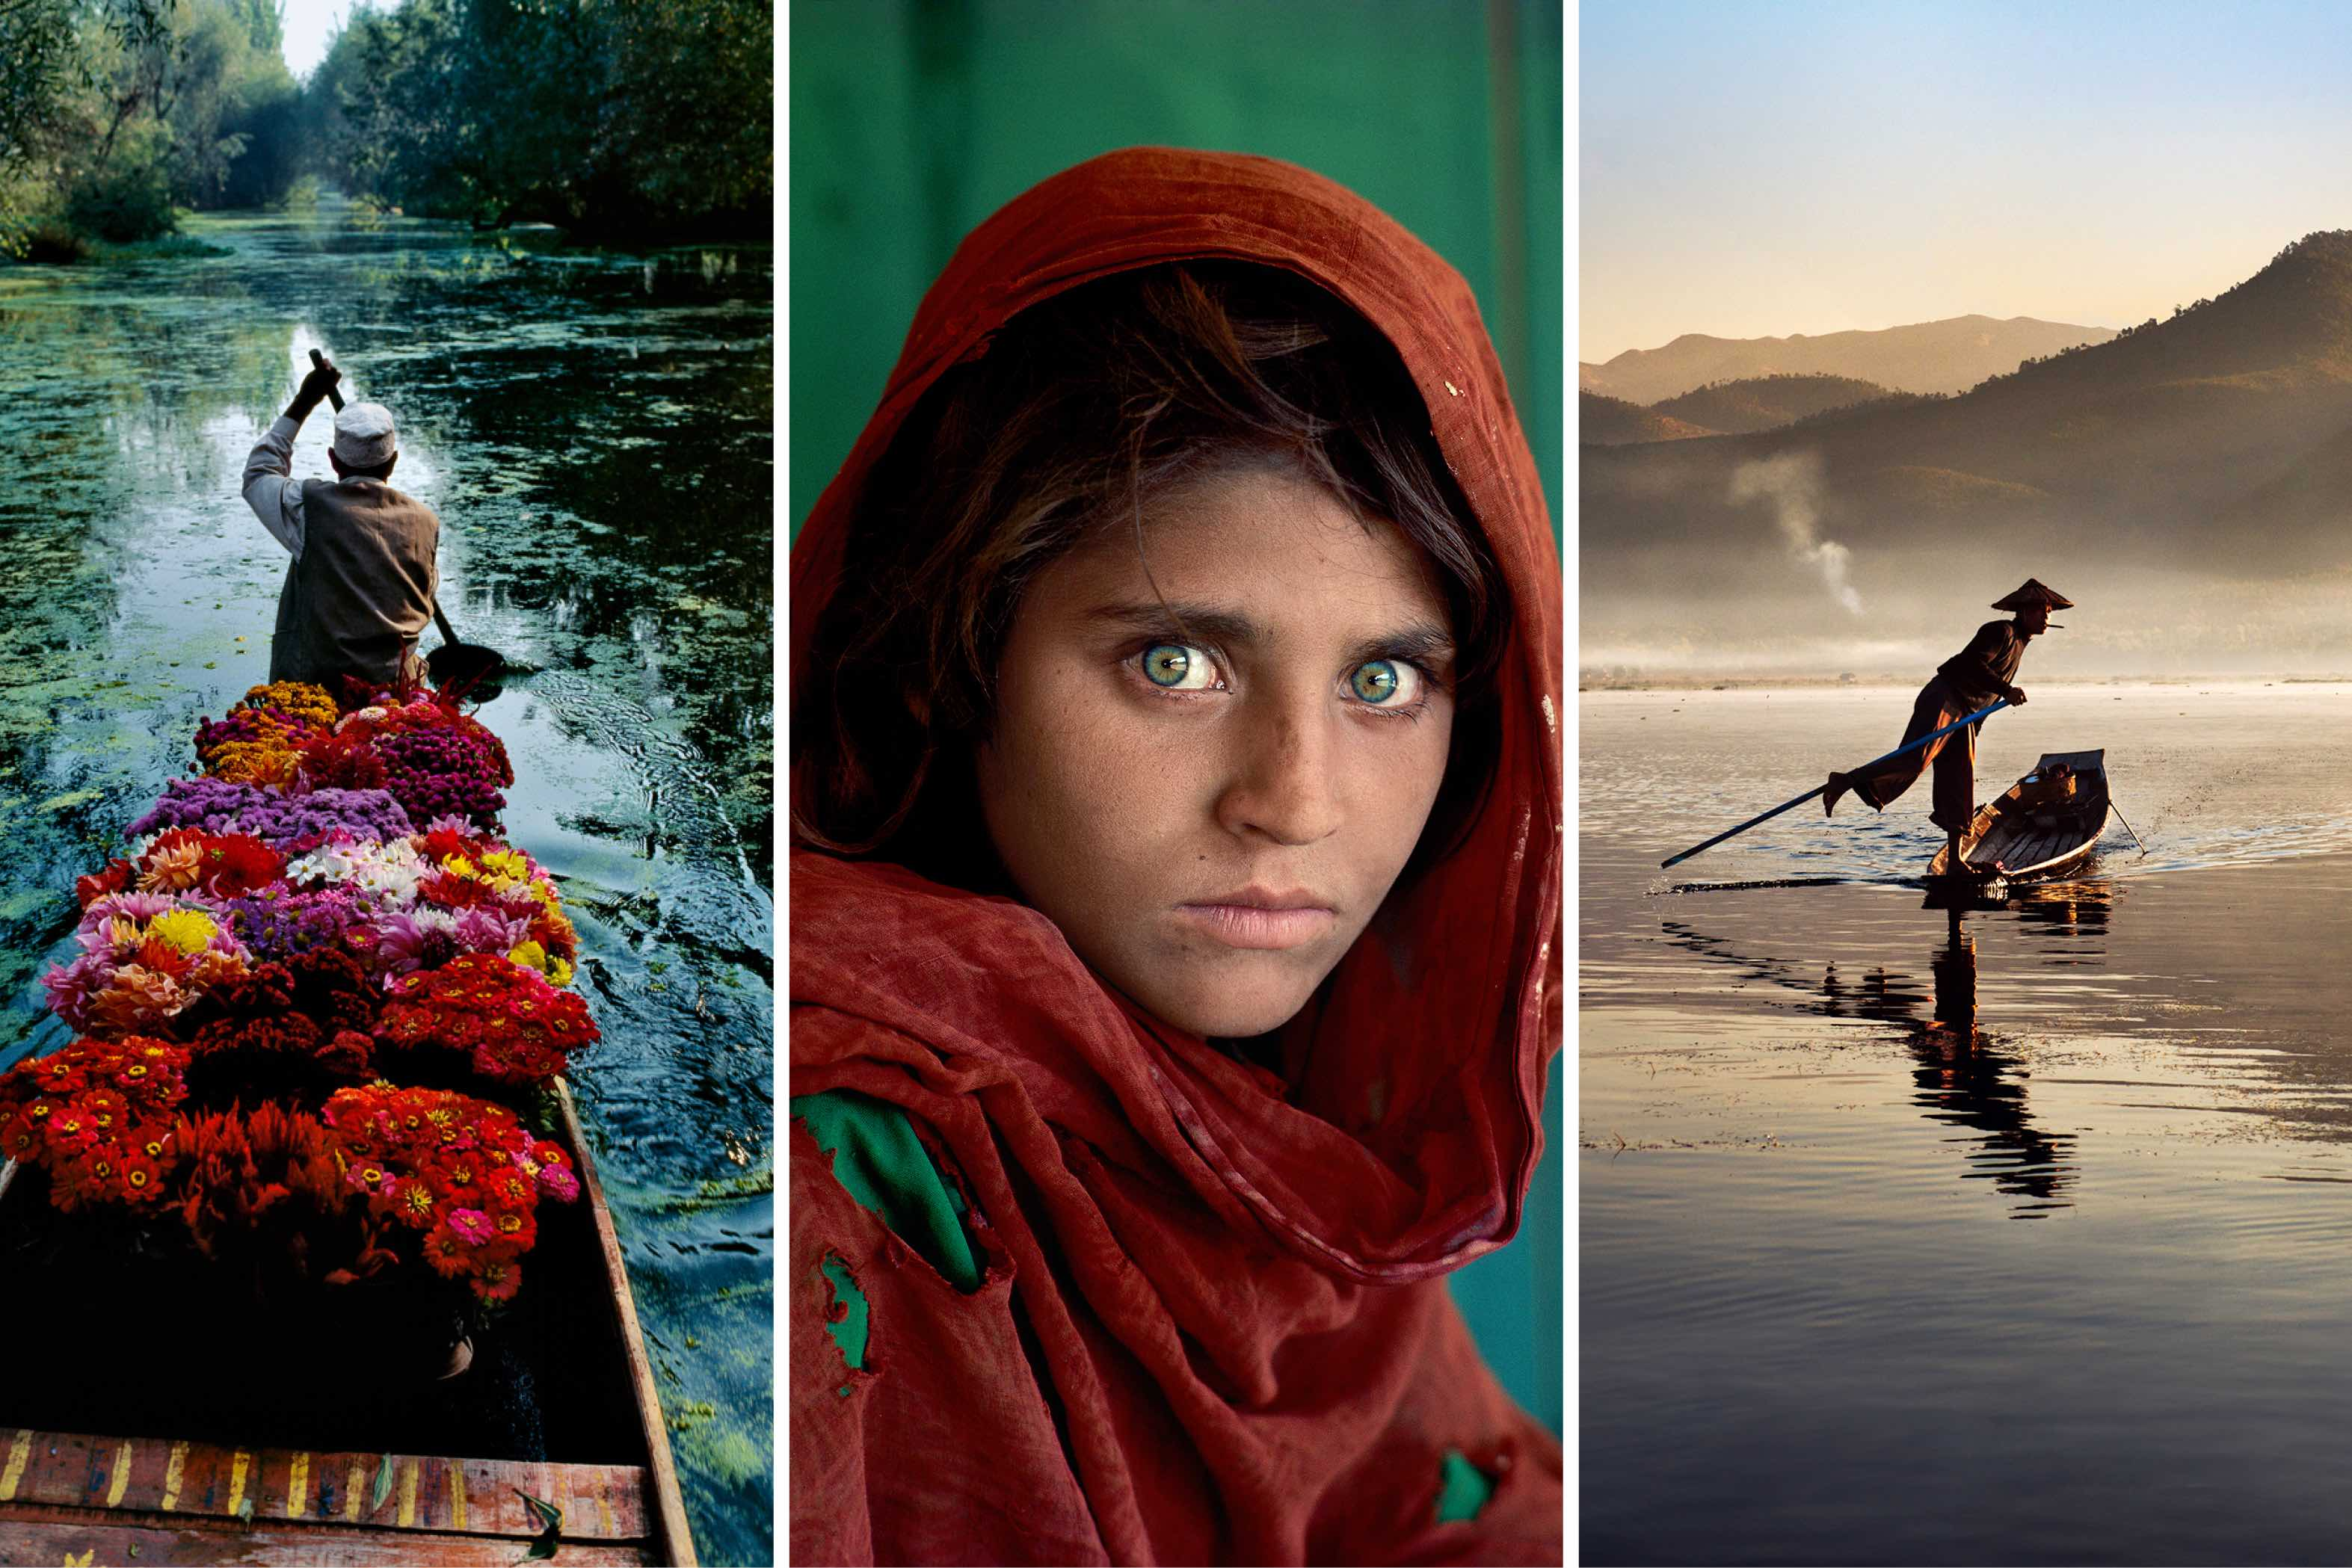 Remportez vos tickets pour l'exposition The World of Steve McCurry